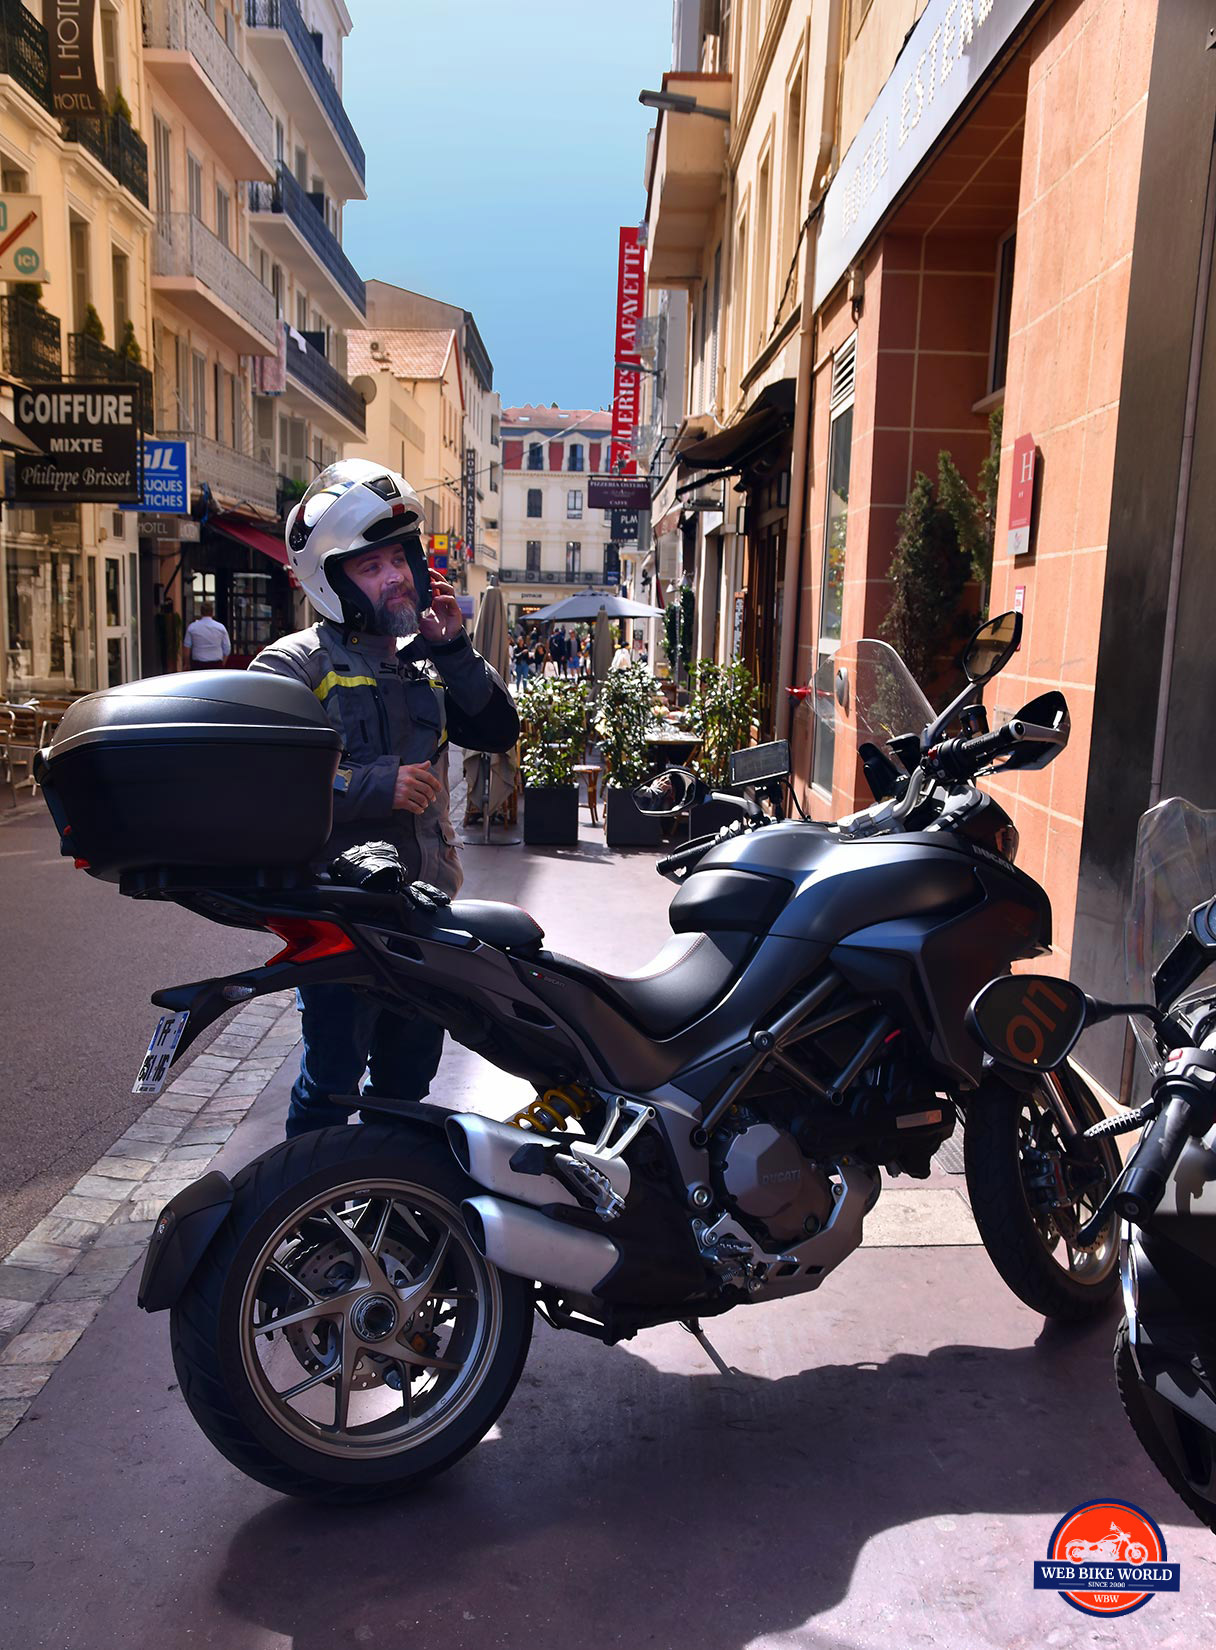 Me and a 2019 Ducati Multistrada 1260S in Cannes, France.